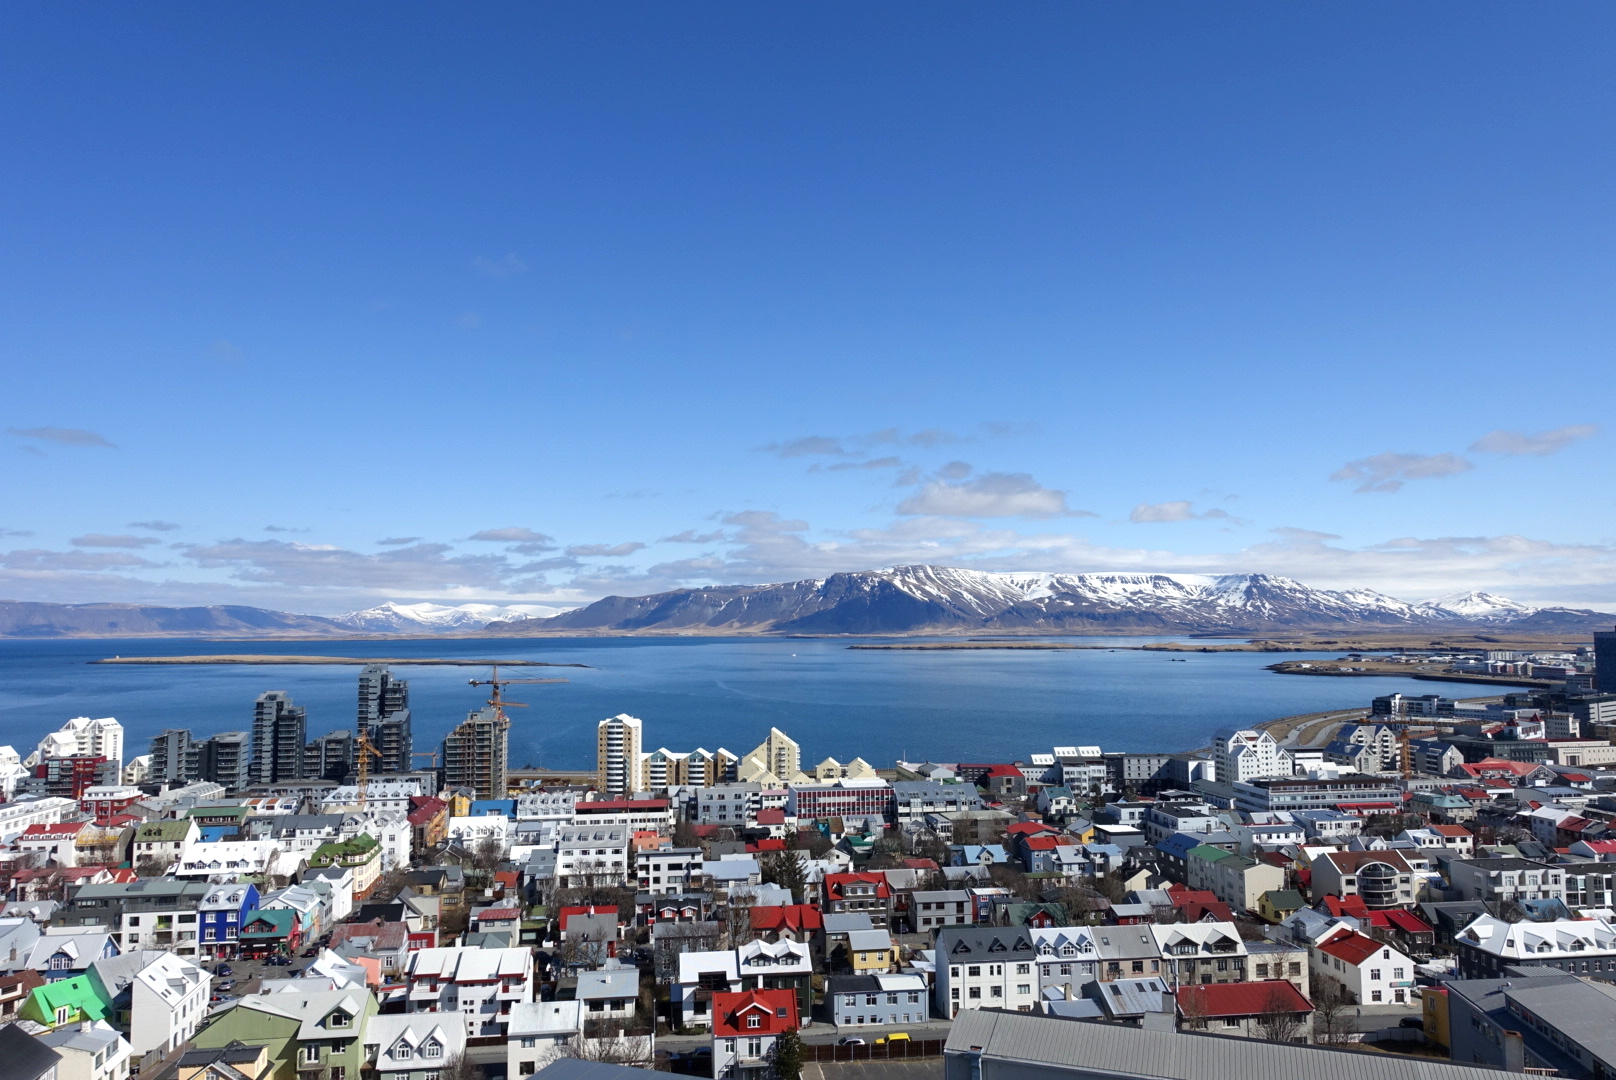 Reykjavík' mountain horizon is an ever-present delight in the northernmost capital of the world.